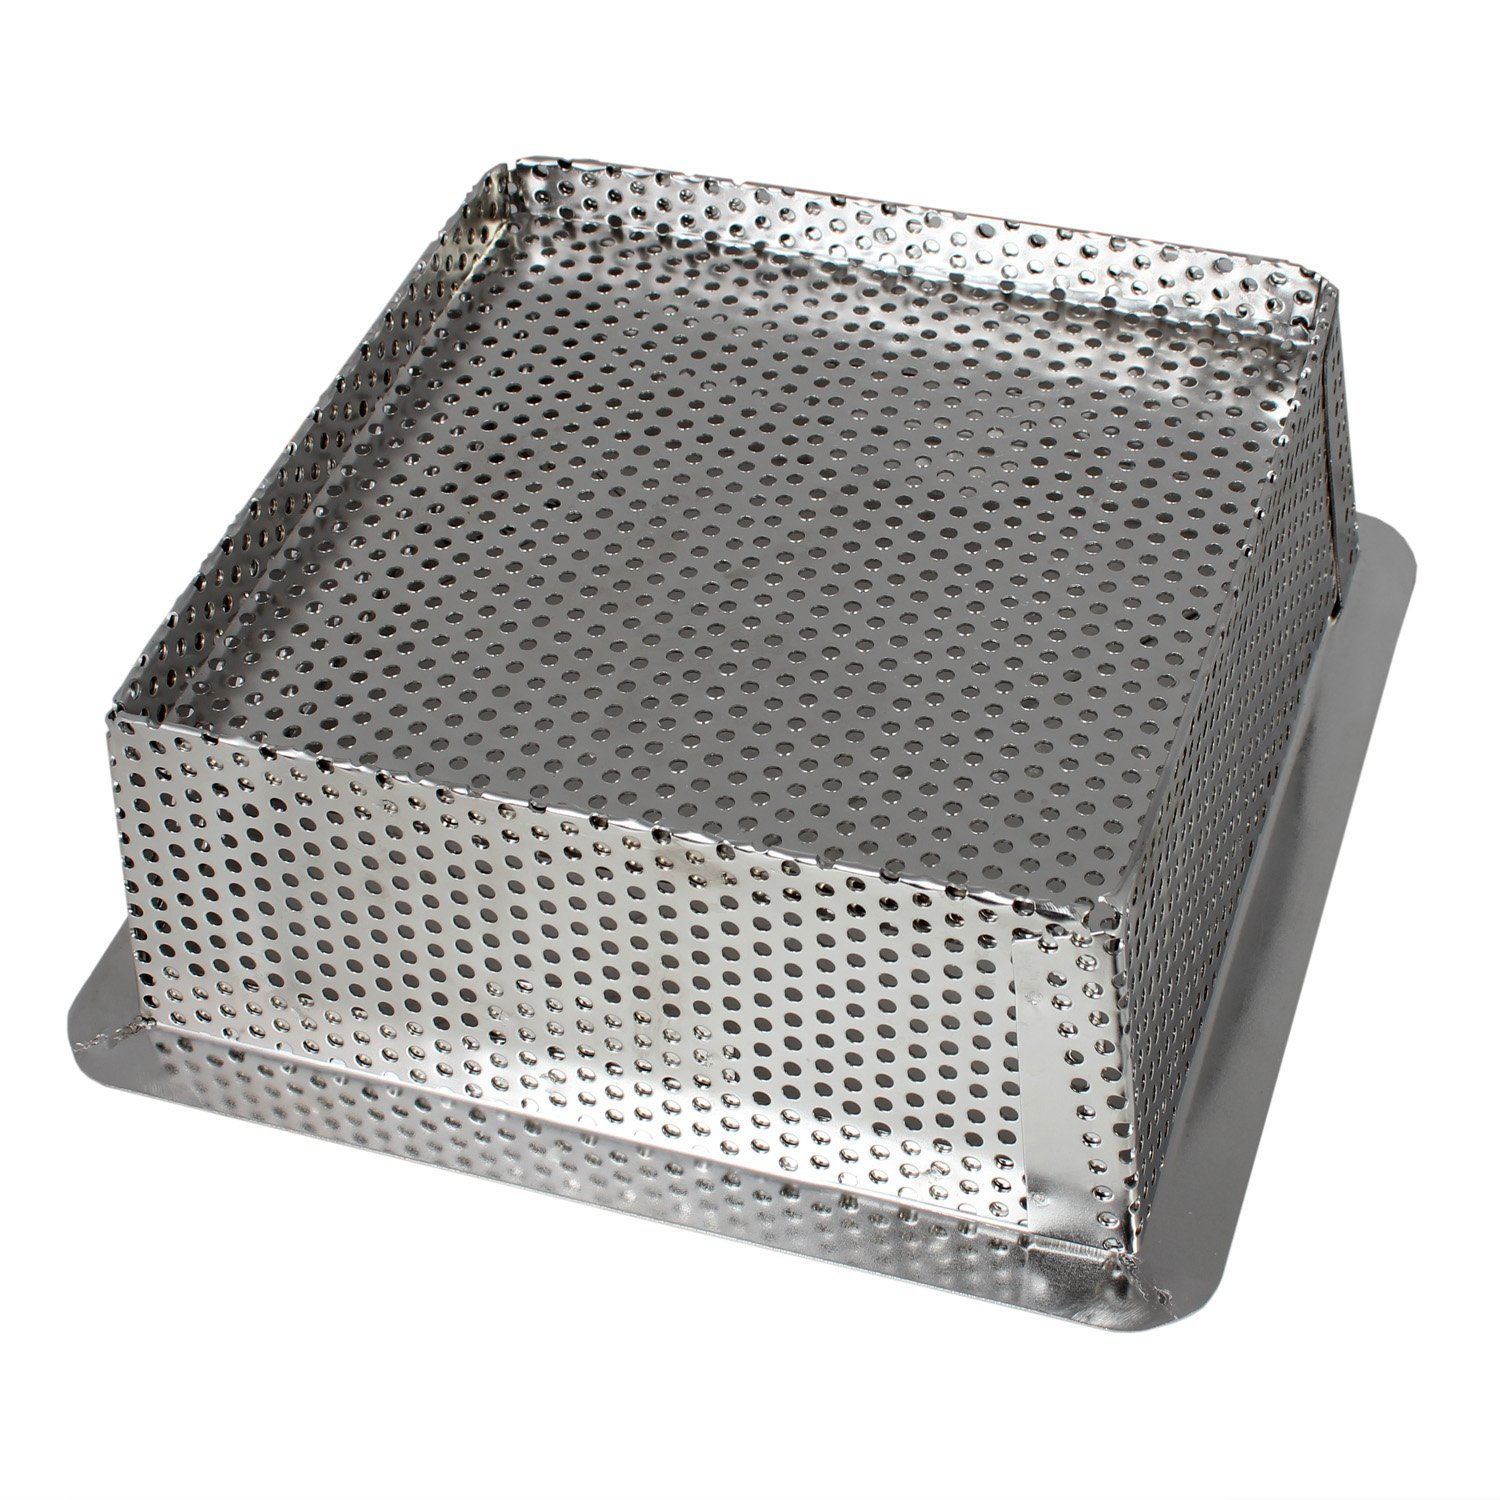 Fsq Floor Sink Basket Drain Strainer Stainless Steel For Restaurants Amp Commercial